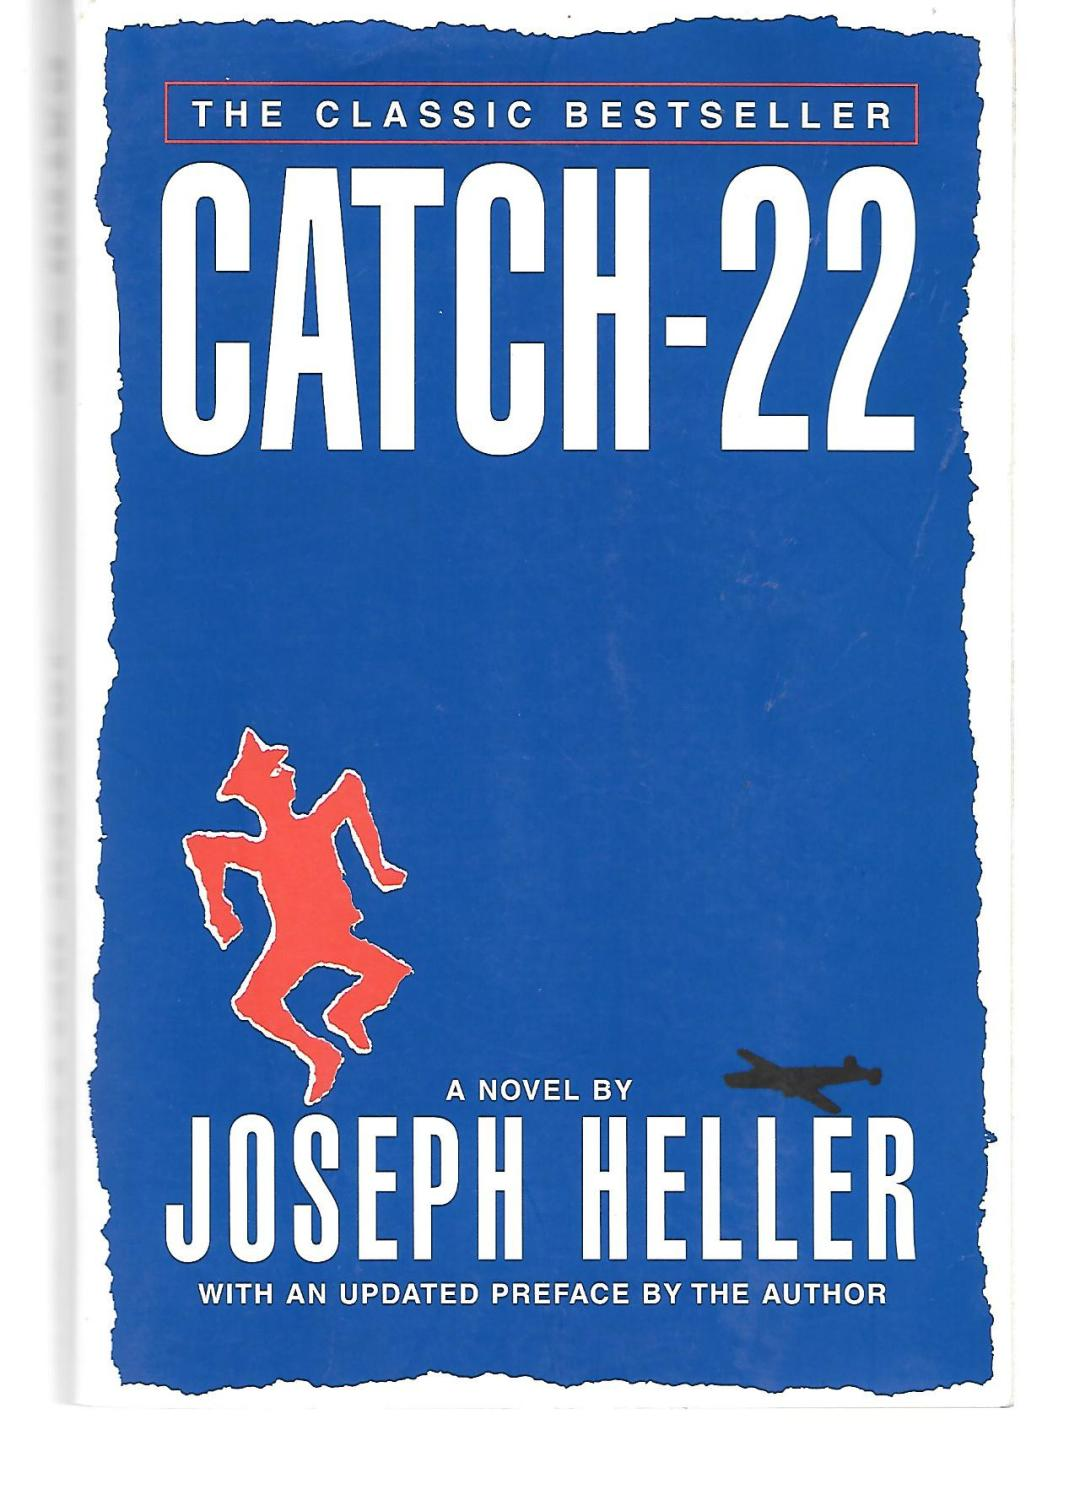 joseph heller features members of the middle class in catch 22 Hulu adaptation of joseph heller's novel catch-22 from 1960 with the members of the rat pack with actor for his work in the middle east.